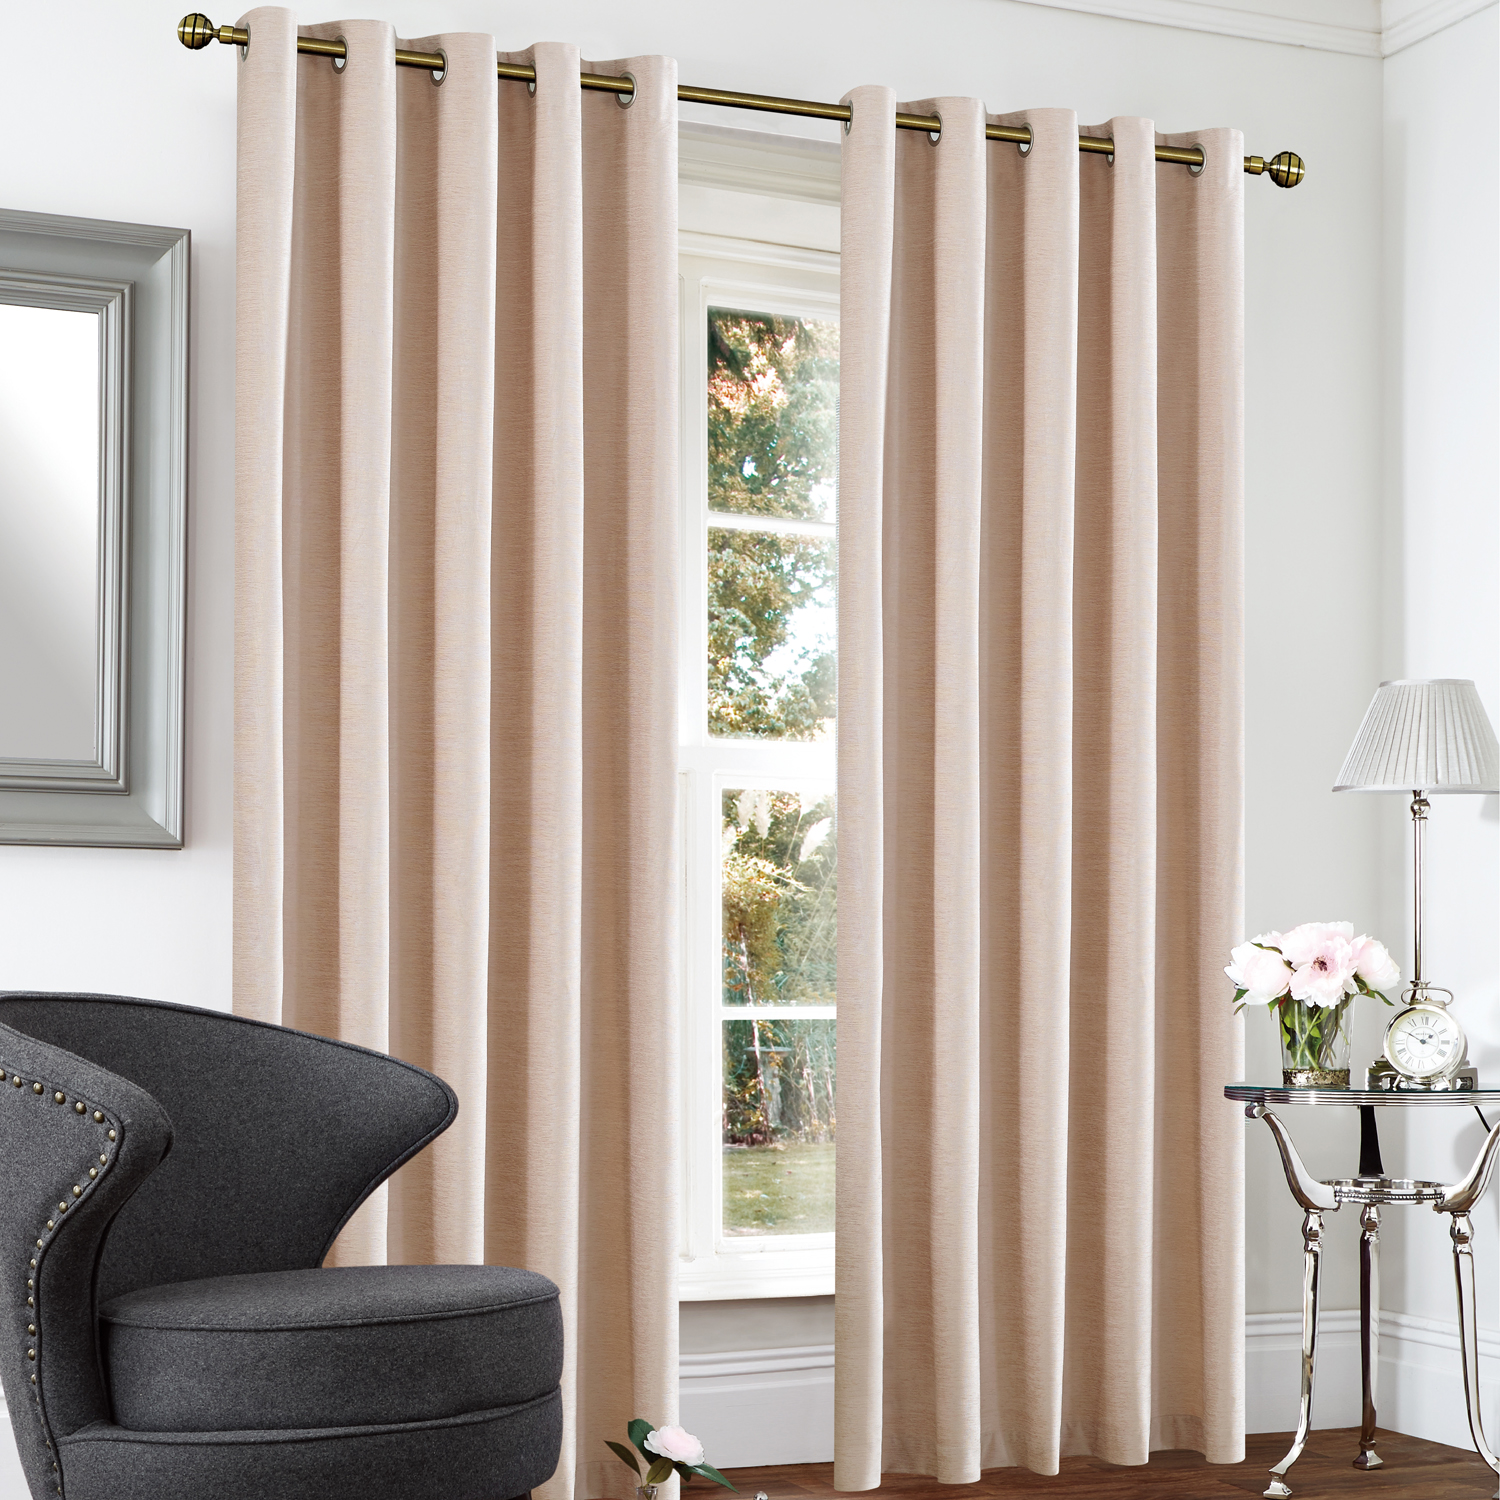 Household Stores: Blackout & Thermal Textured Curtains